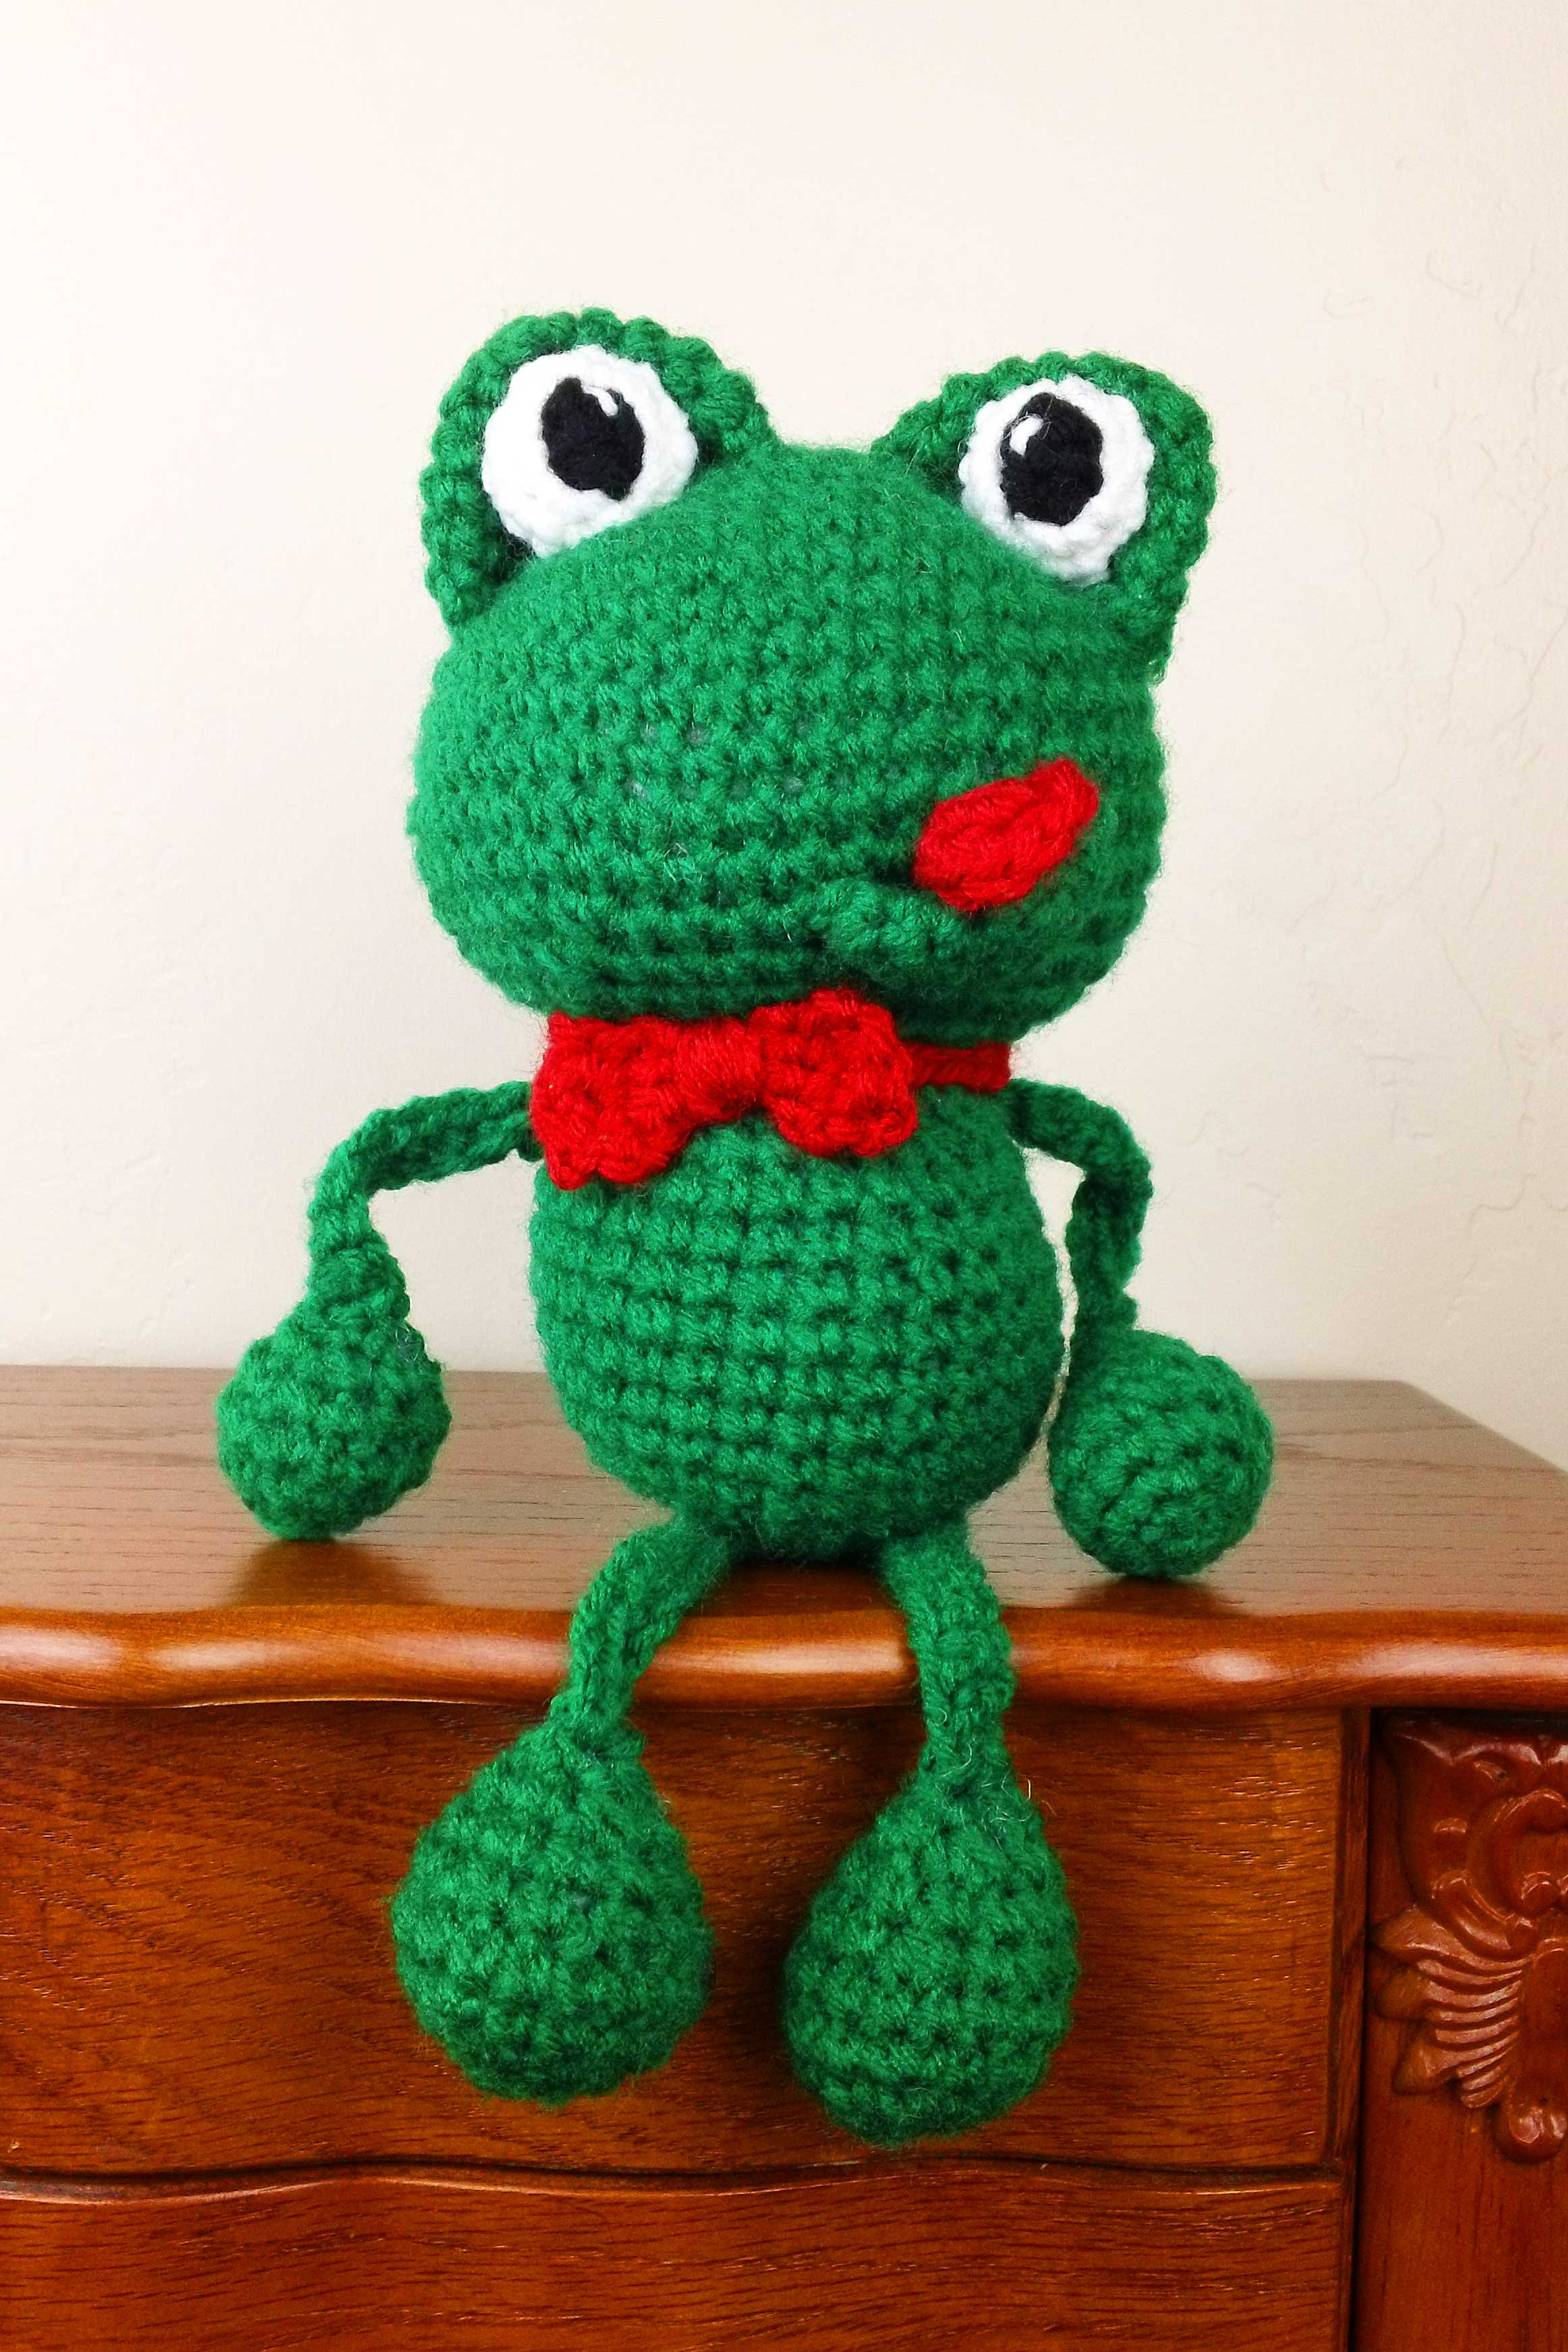 Crochet Frogs Awesome Crochet Frog Pattern Of Superb 49 Pictures Crochet Frogs